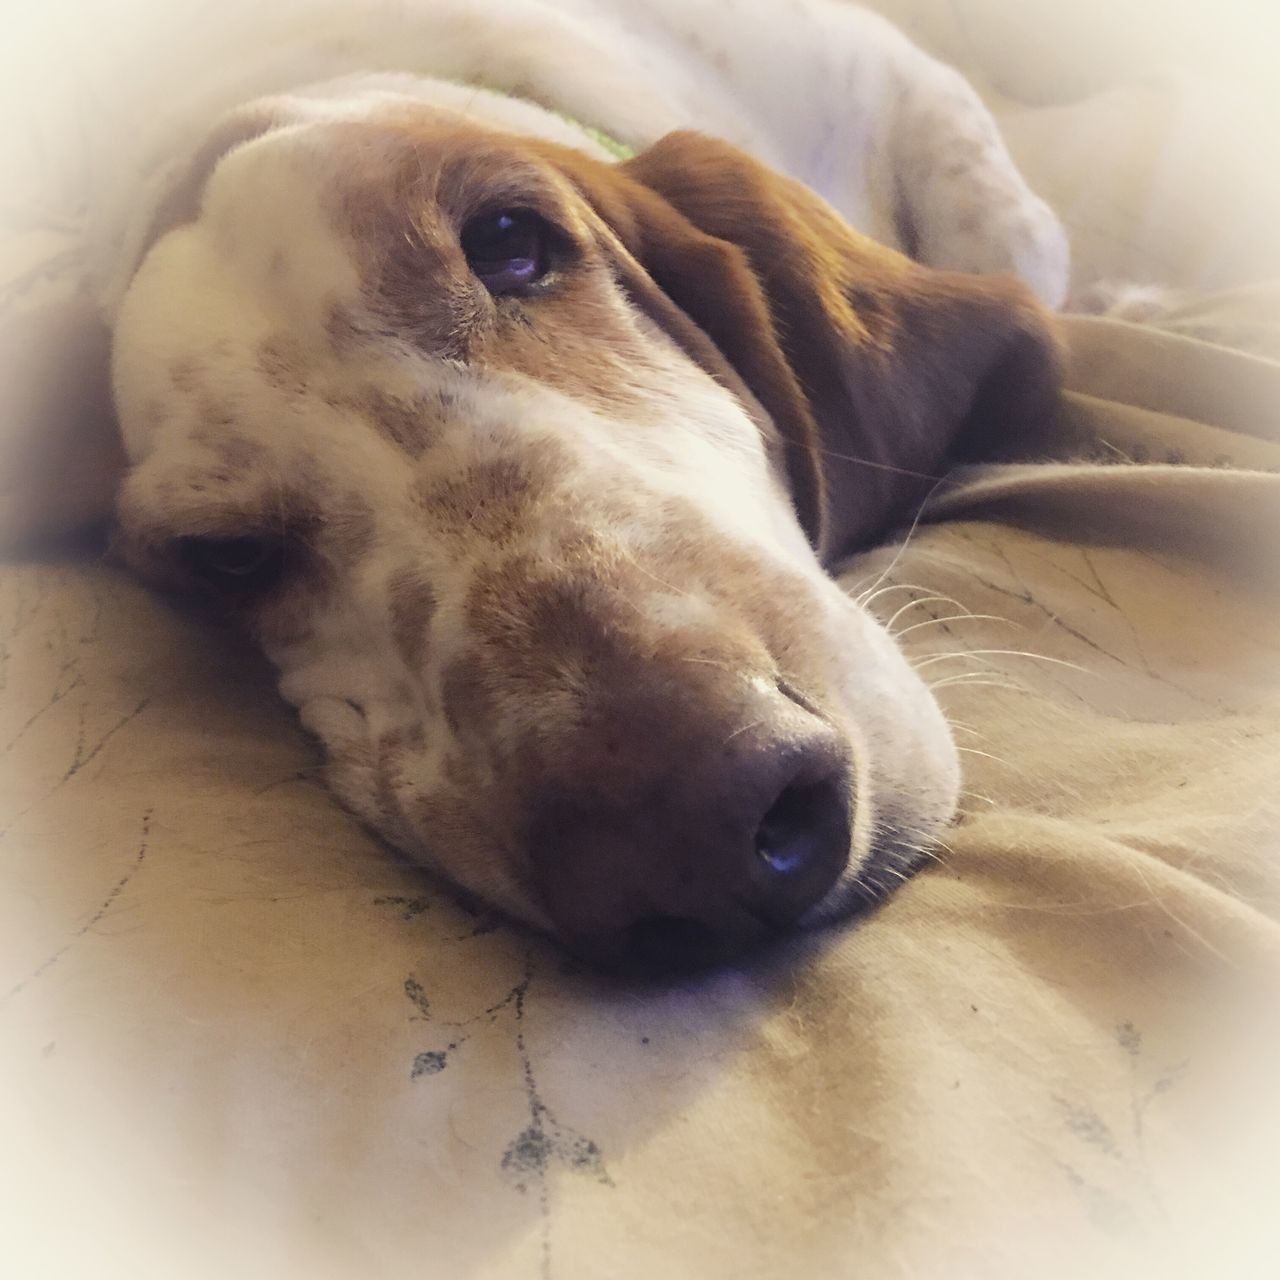 dog, one animal, pets, animal themes, mammal, domestic animals, relaxation, animal head, indoors, close-up, lying down, no people, day